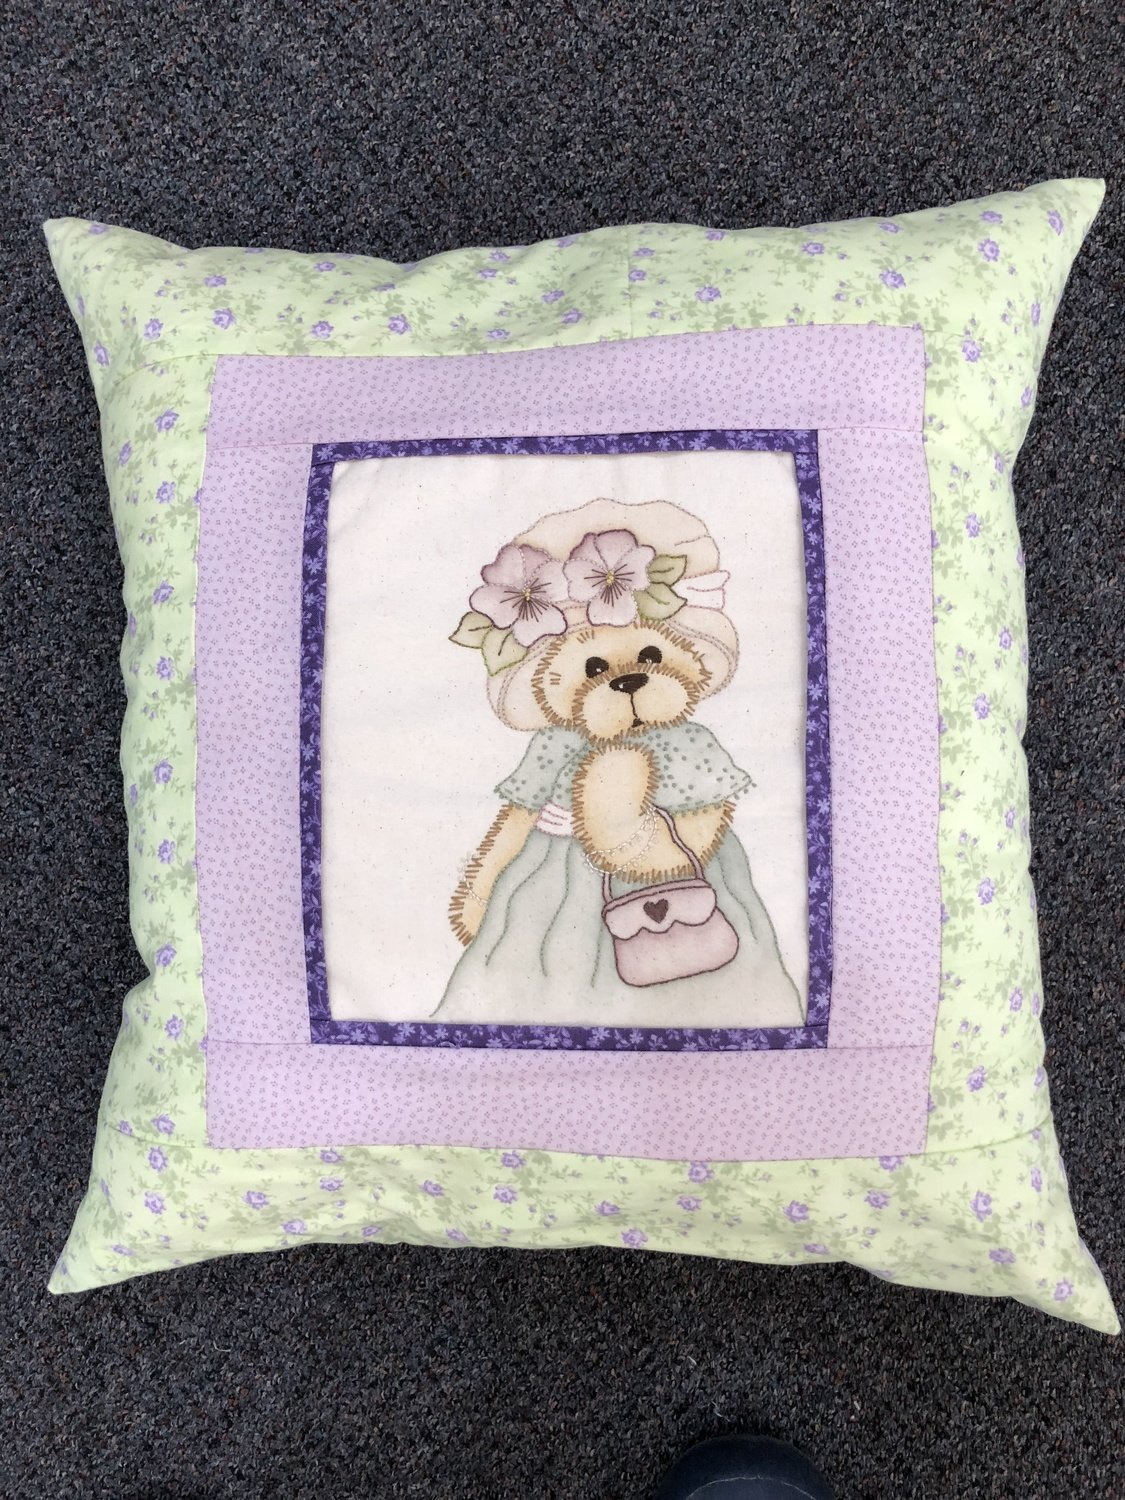 Betsy Bear - Finished Cushion Complete